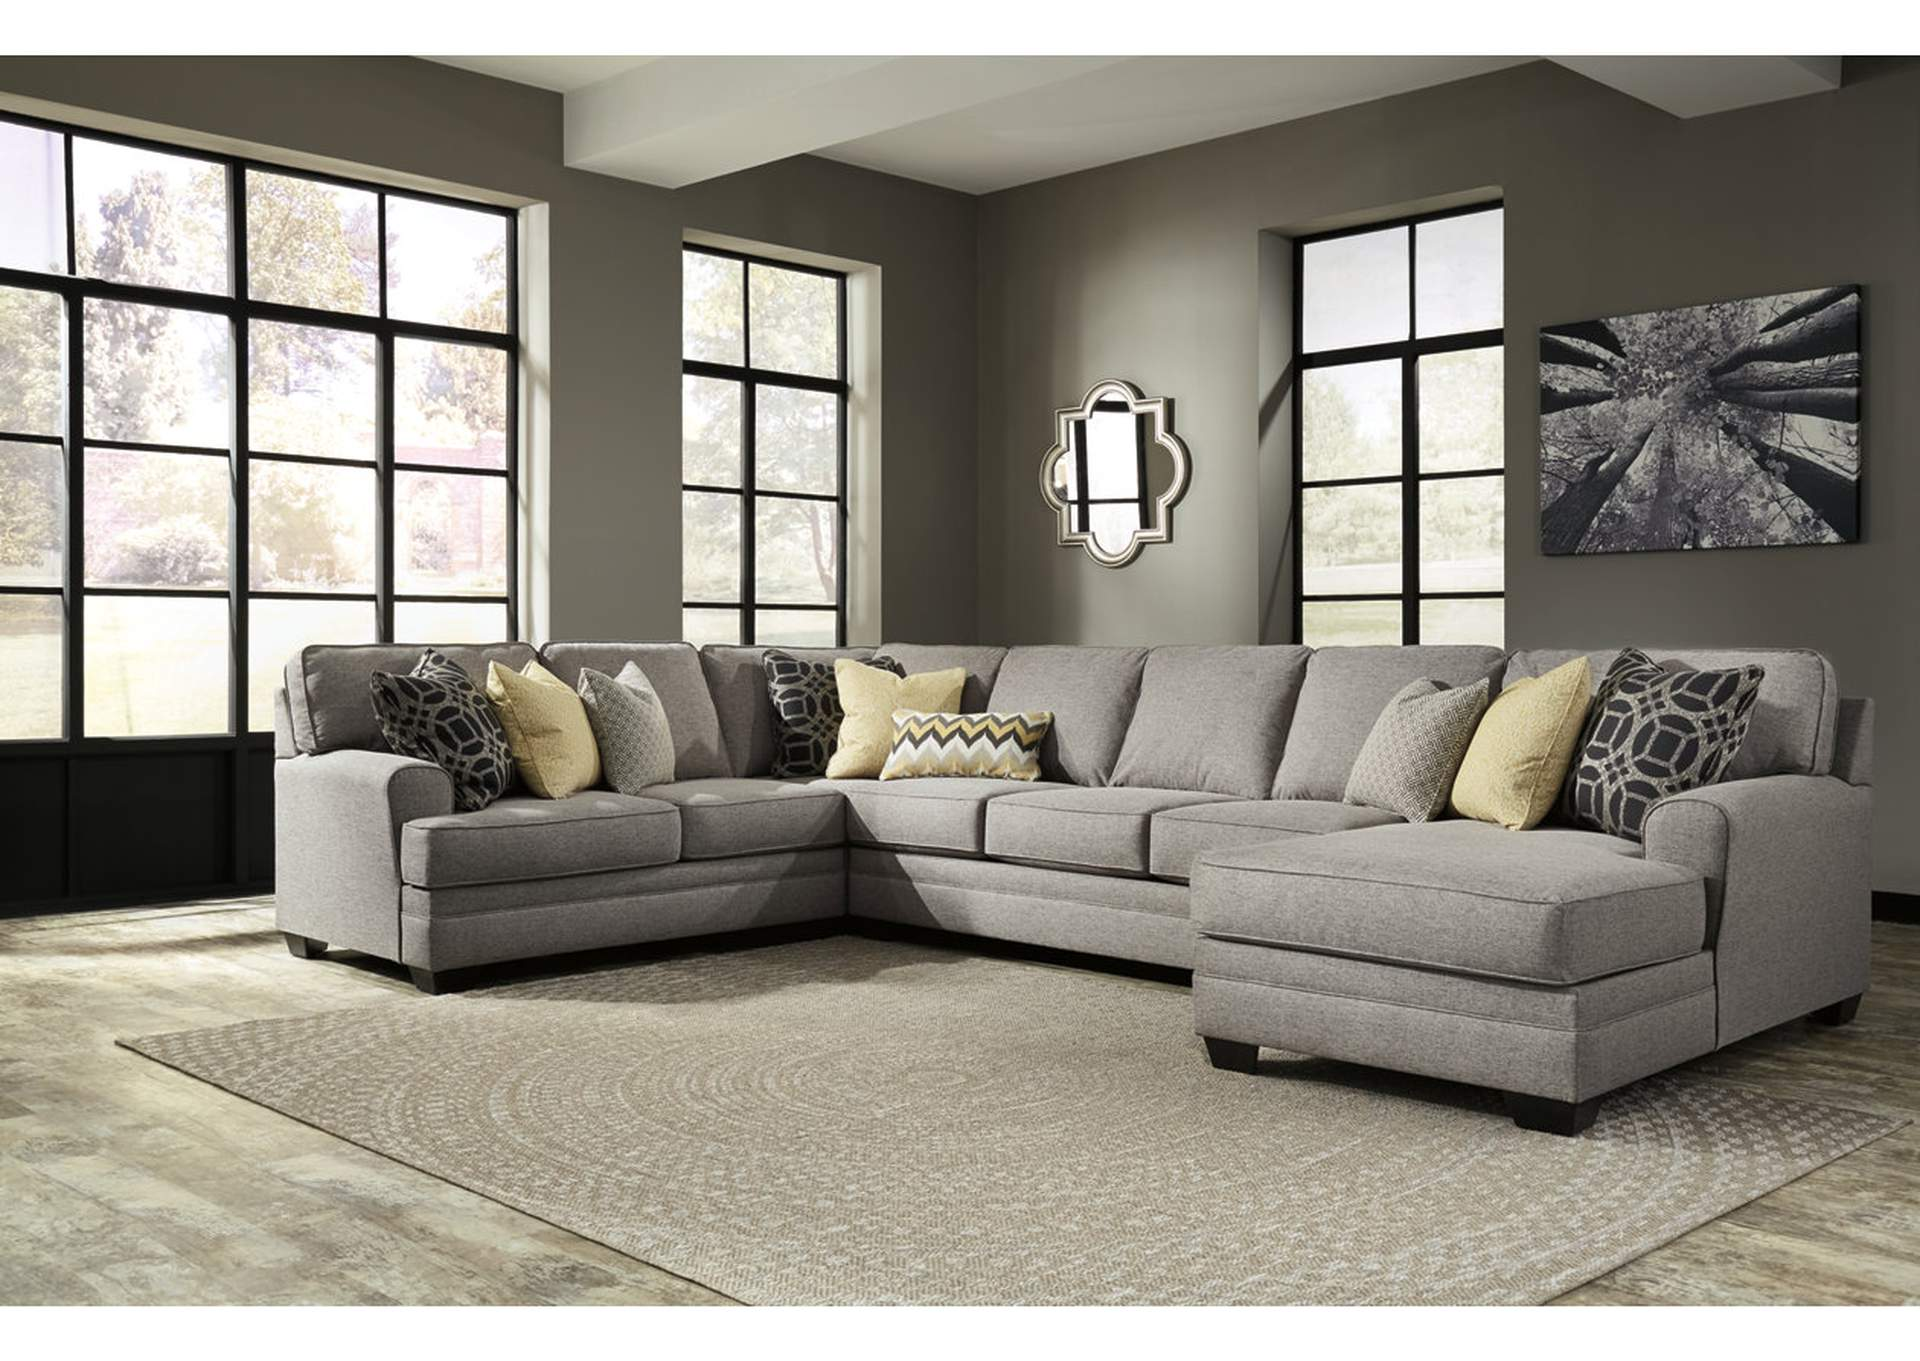 Austin S Couch Potatoes Furniture Stores Austin Texas Cresson Pewter